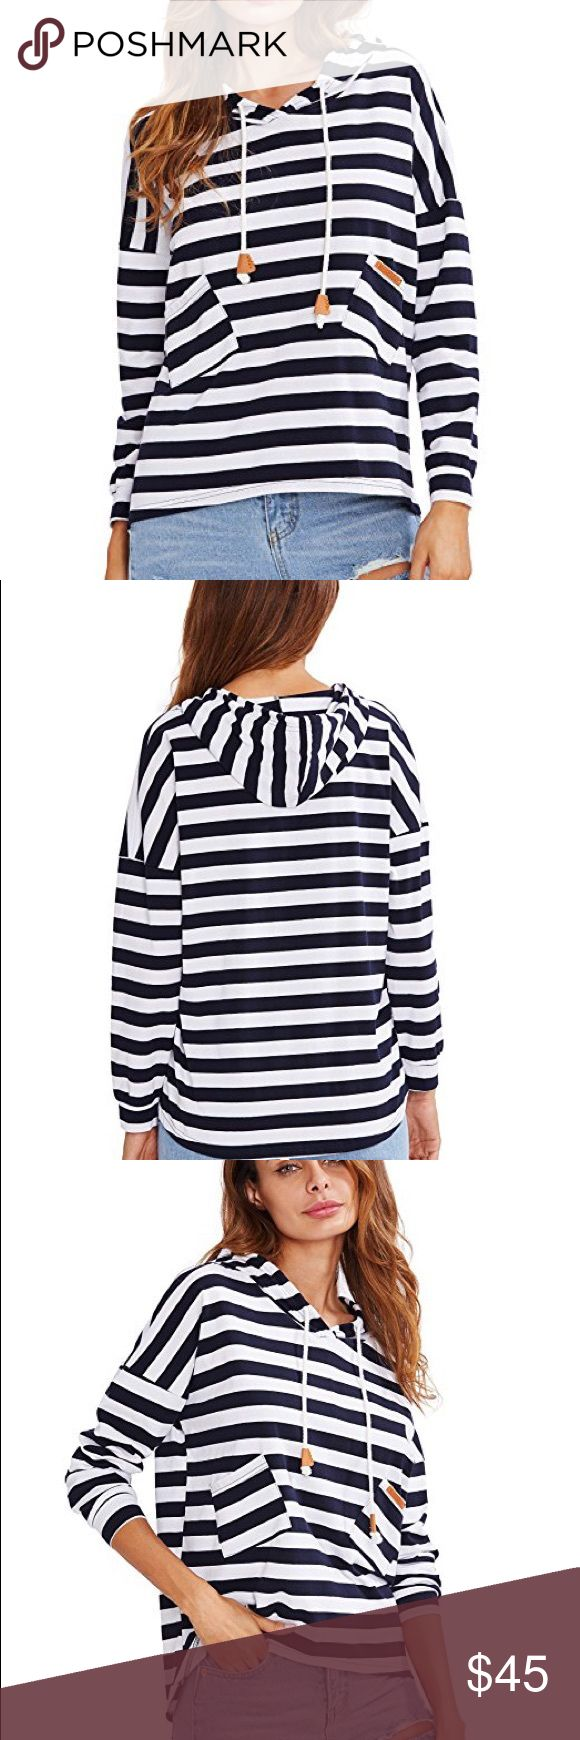 Hooded navy tunic Brand new with tags boutique navy blue and white striped hoodie tunic top. One size fits most. Pls refer to size chart for info on sizing. 100% cotton.  POSH RULES ONY, NO PP, NO LOWBALL OFFERS, NO TRADES.  HAPPY POSHING! boutique Tops Tees - Long Sleeve